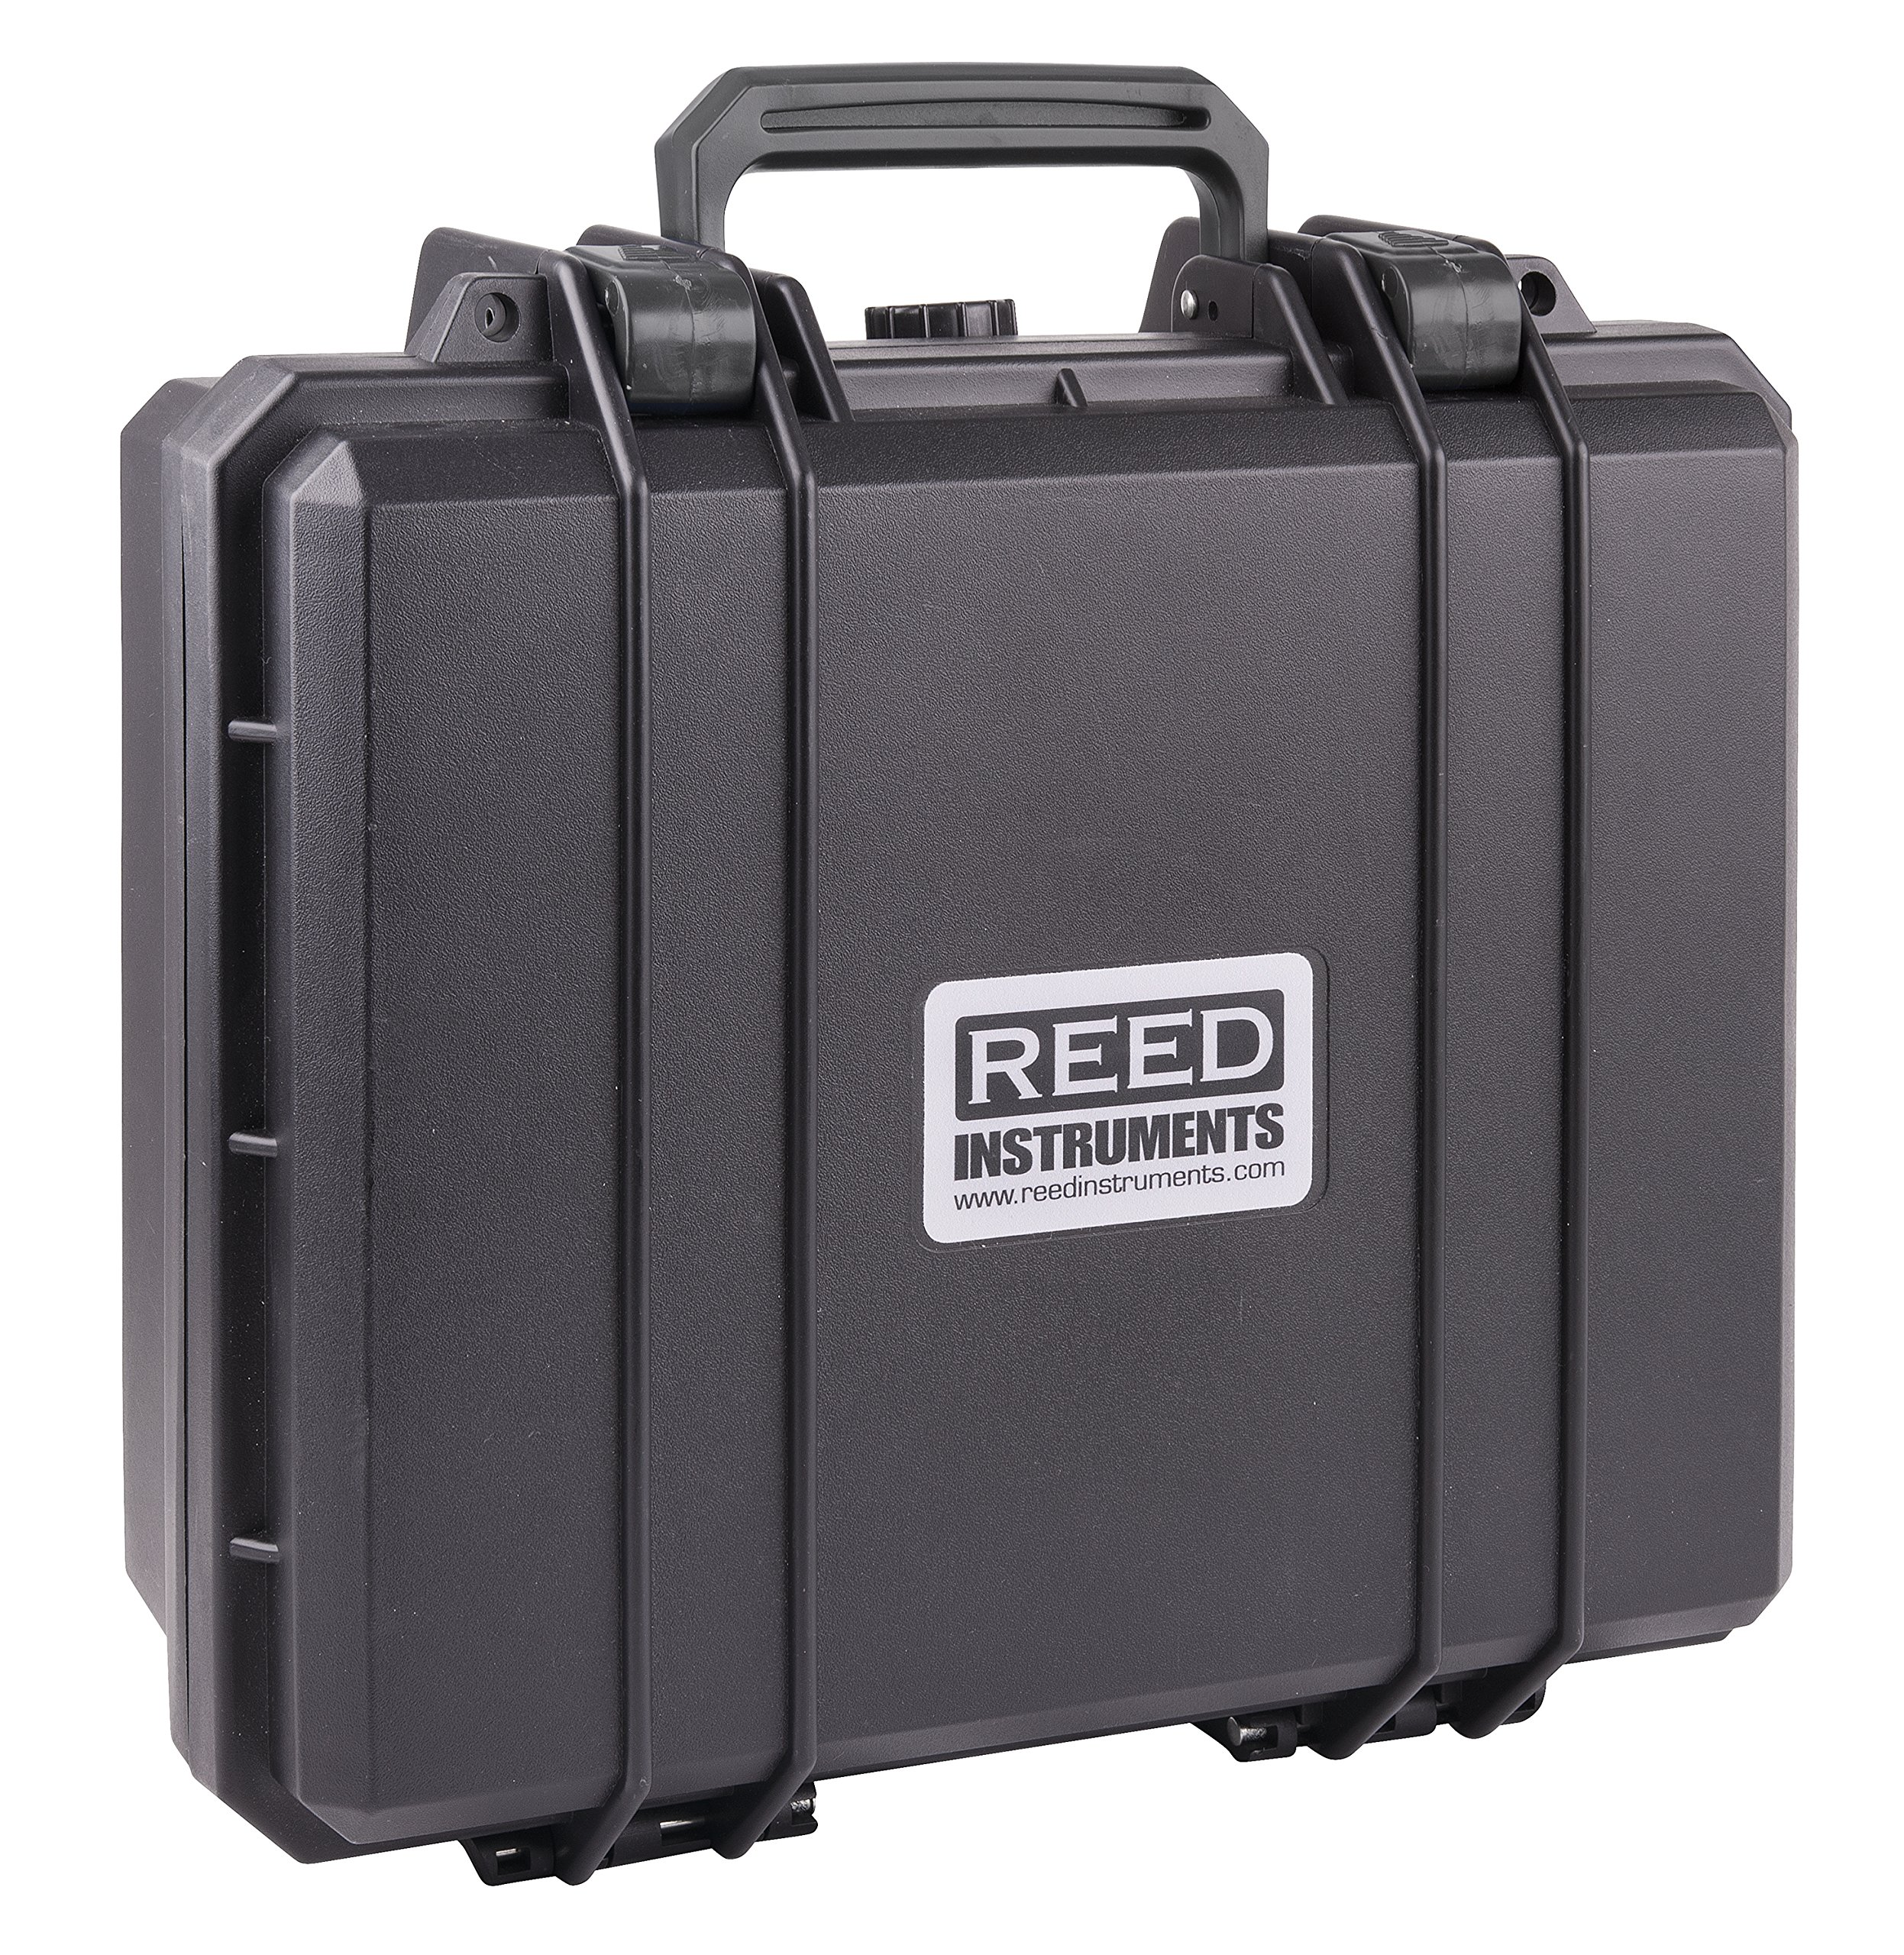 REED Instruments R8890 Deluxe Hard Carrying Case, 15.7'' x 12.6'' x 6.7'' by REED Instruments (Image #5)